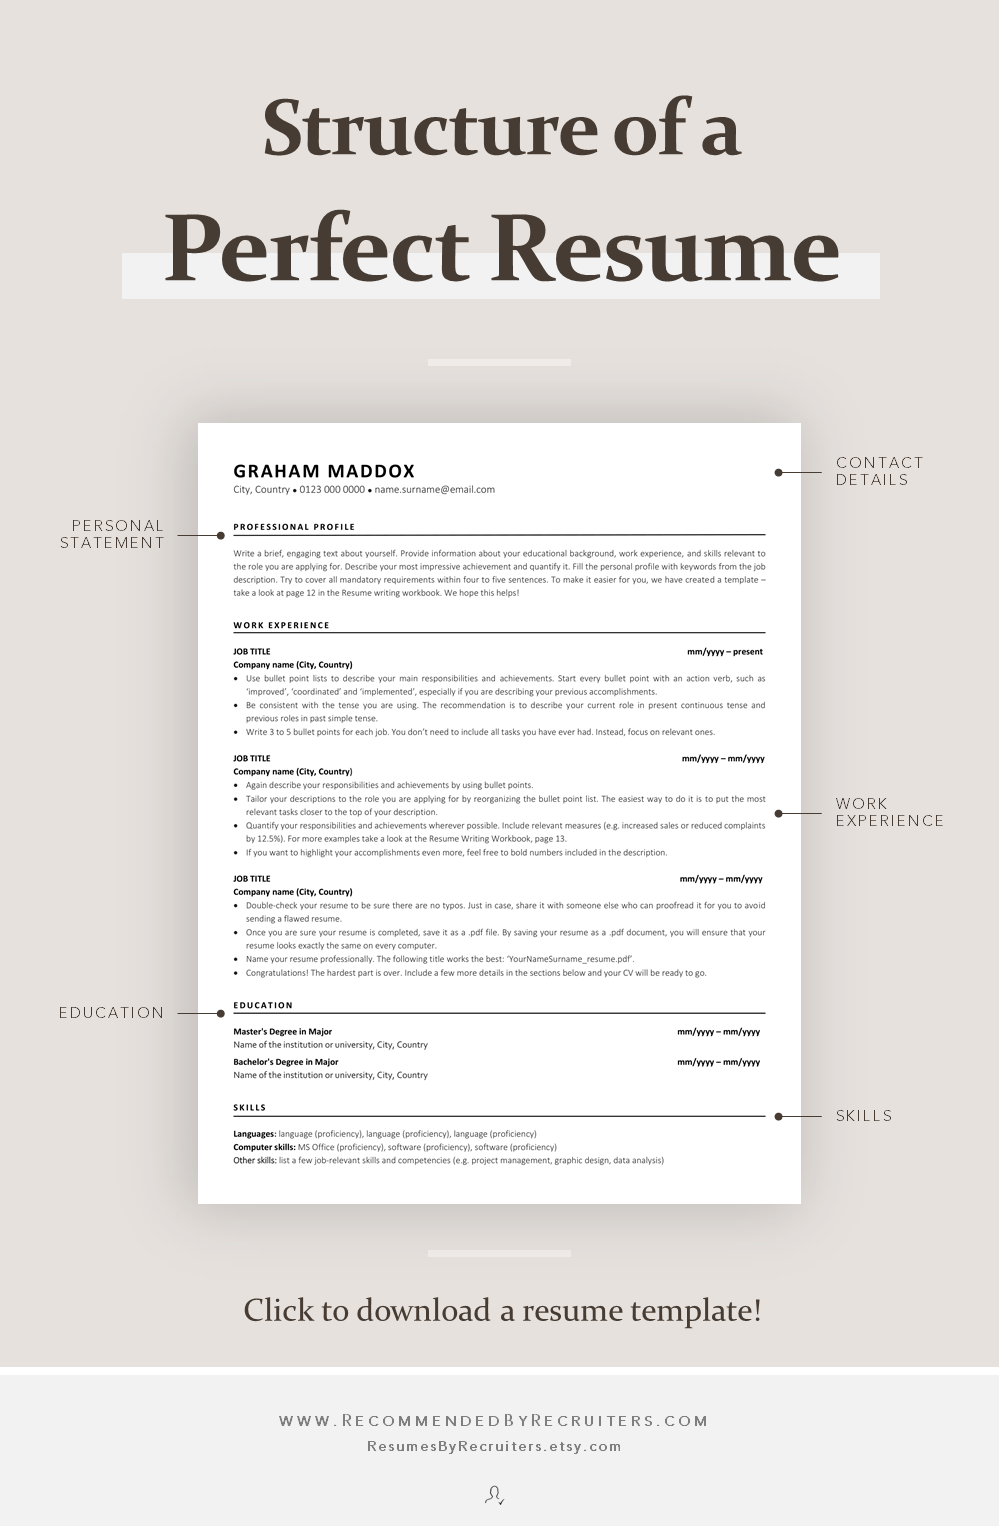 Structor of a resume action research free papers